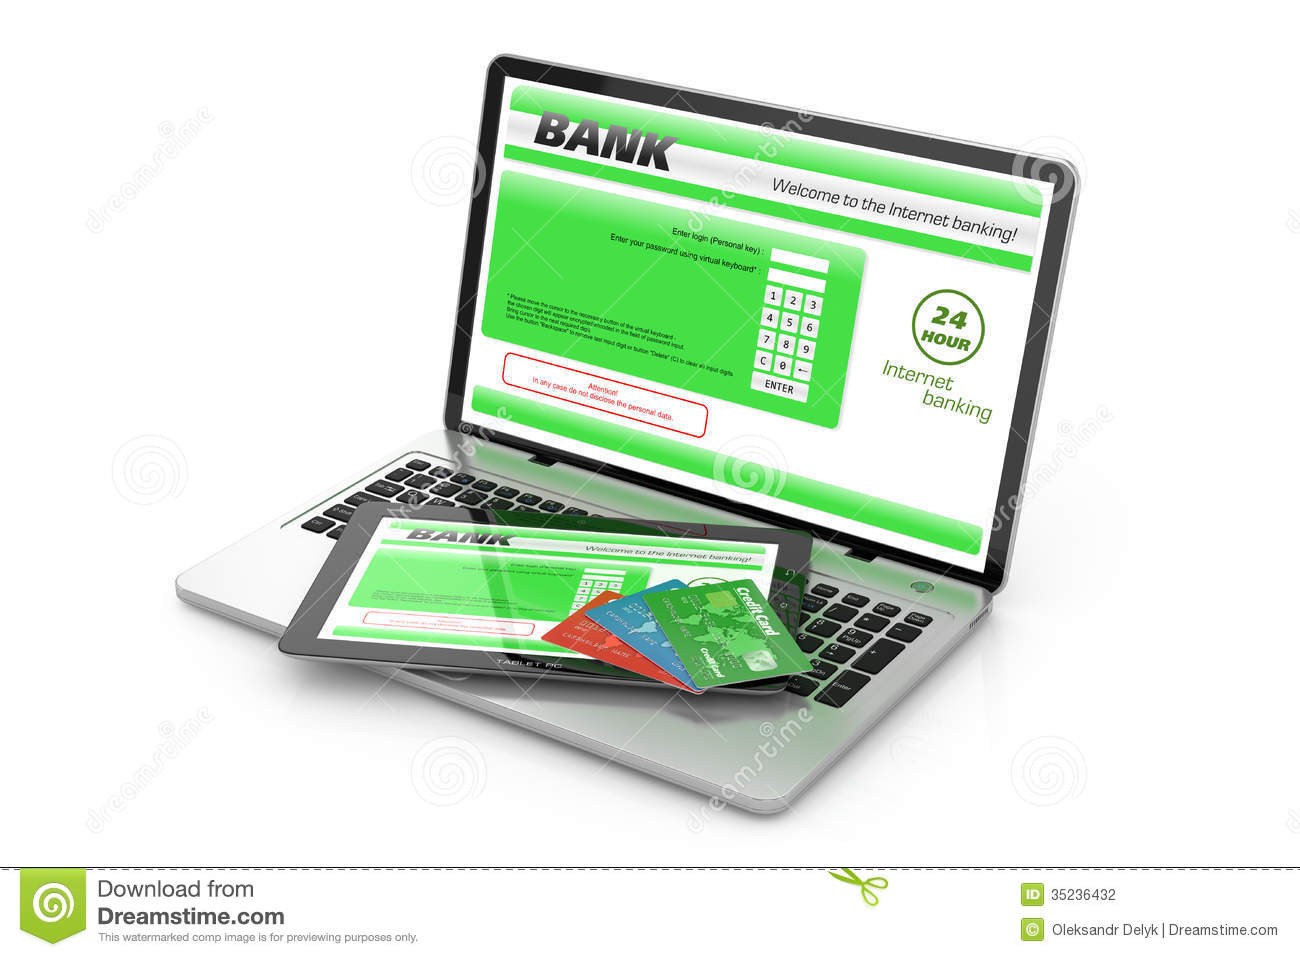 internet-banking-service-concept-isolated-white-background-35236432